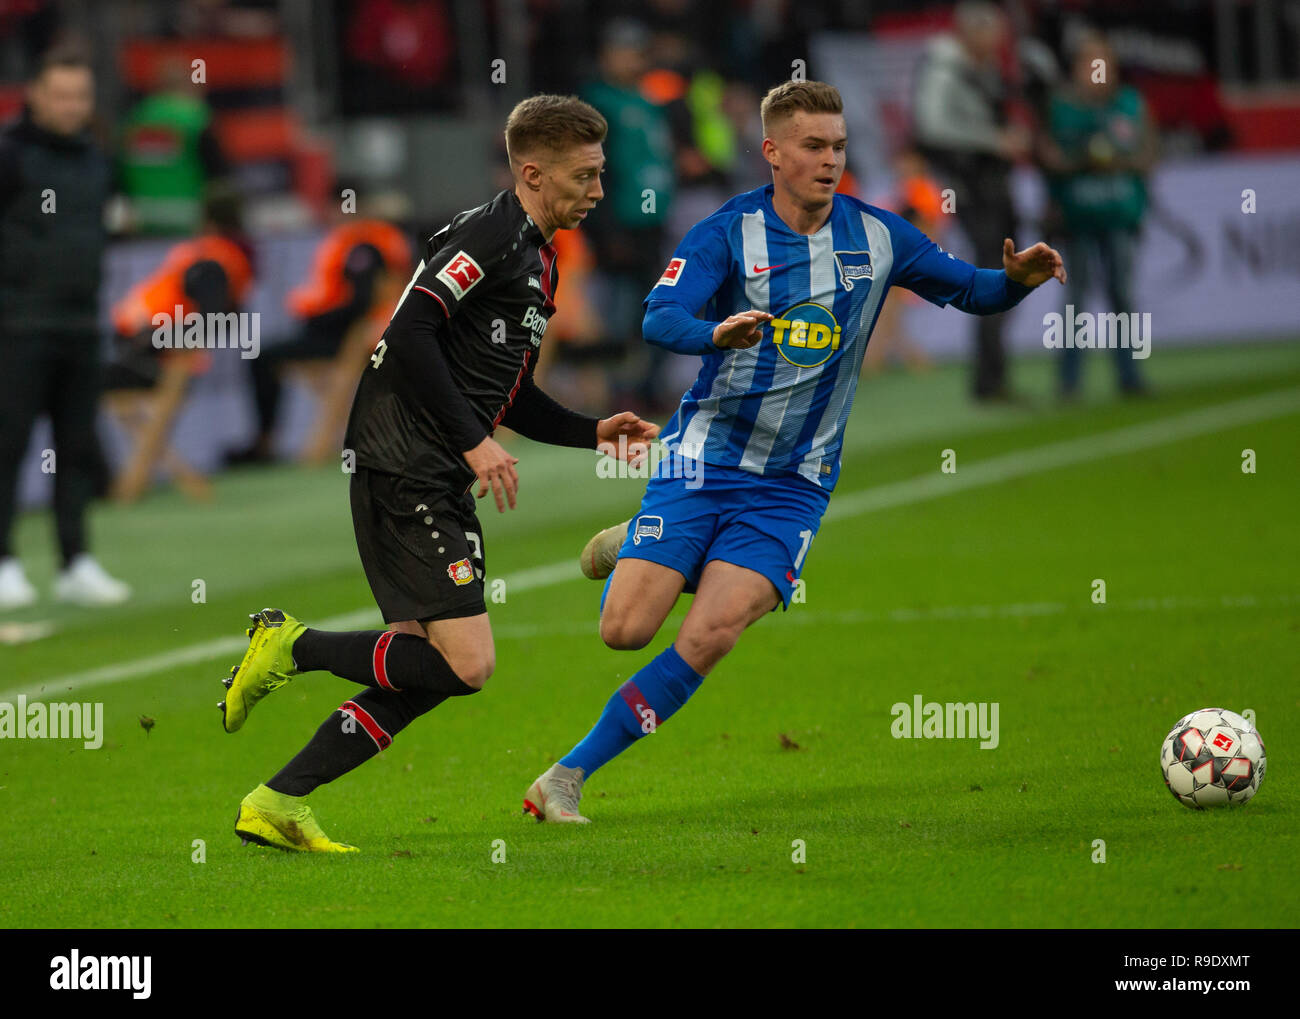 Leverkusen, Germany. 22nd Dec, 2018.  Bundesliga, Bayer 04 Leverkusen - Hertha BSC Berlin: Credit: Juergen Schwarz/Alamy Live News - Stock Image